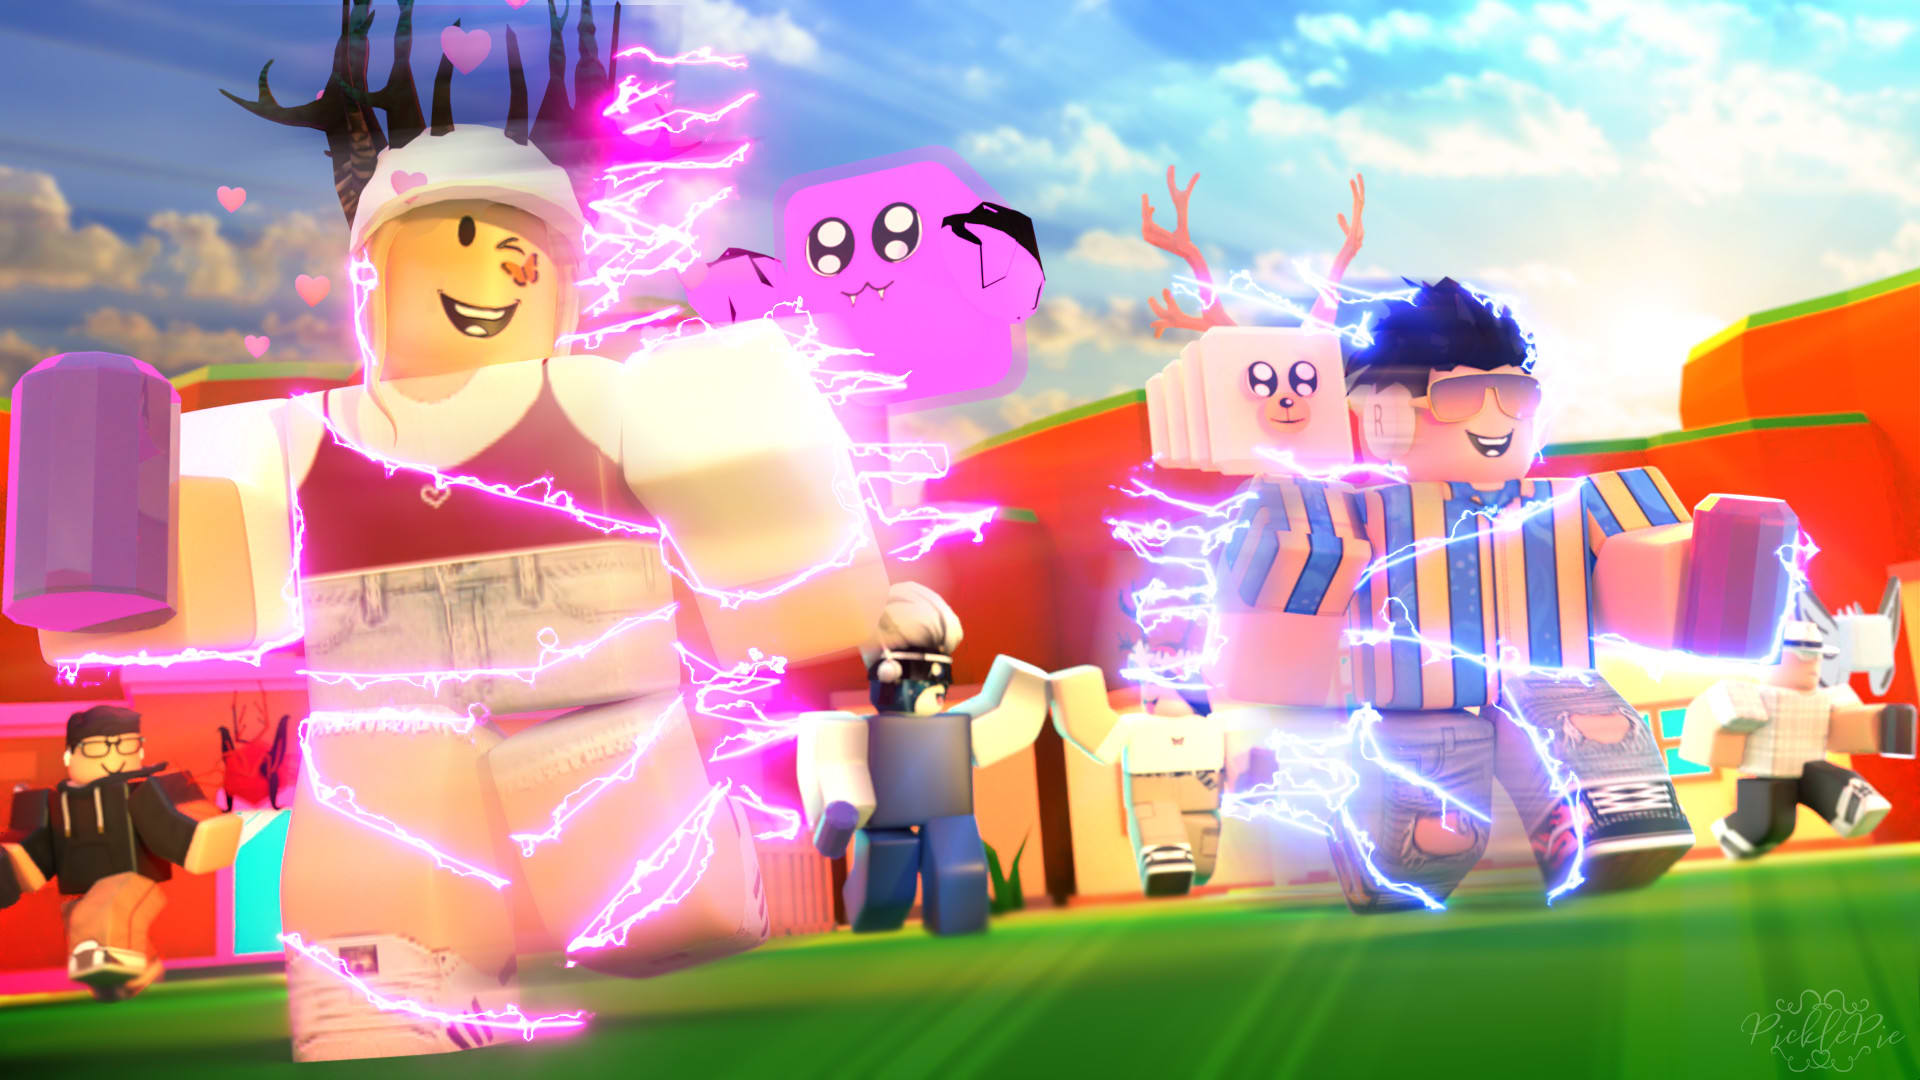 Make You A High Quality Roblox Gfx By Picklepieyt